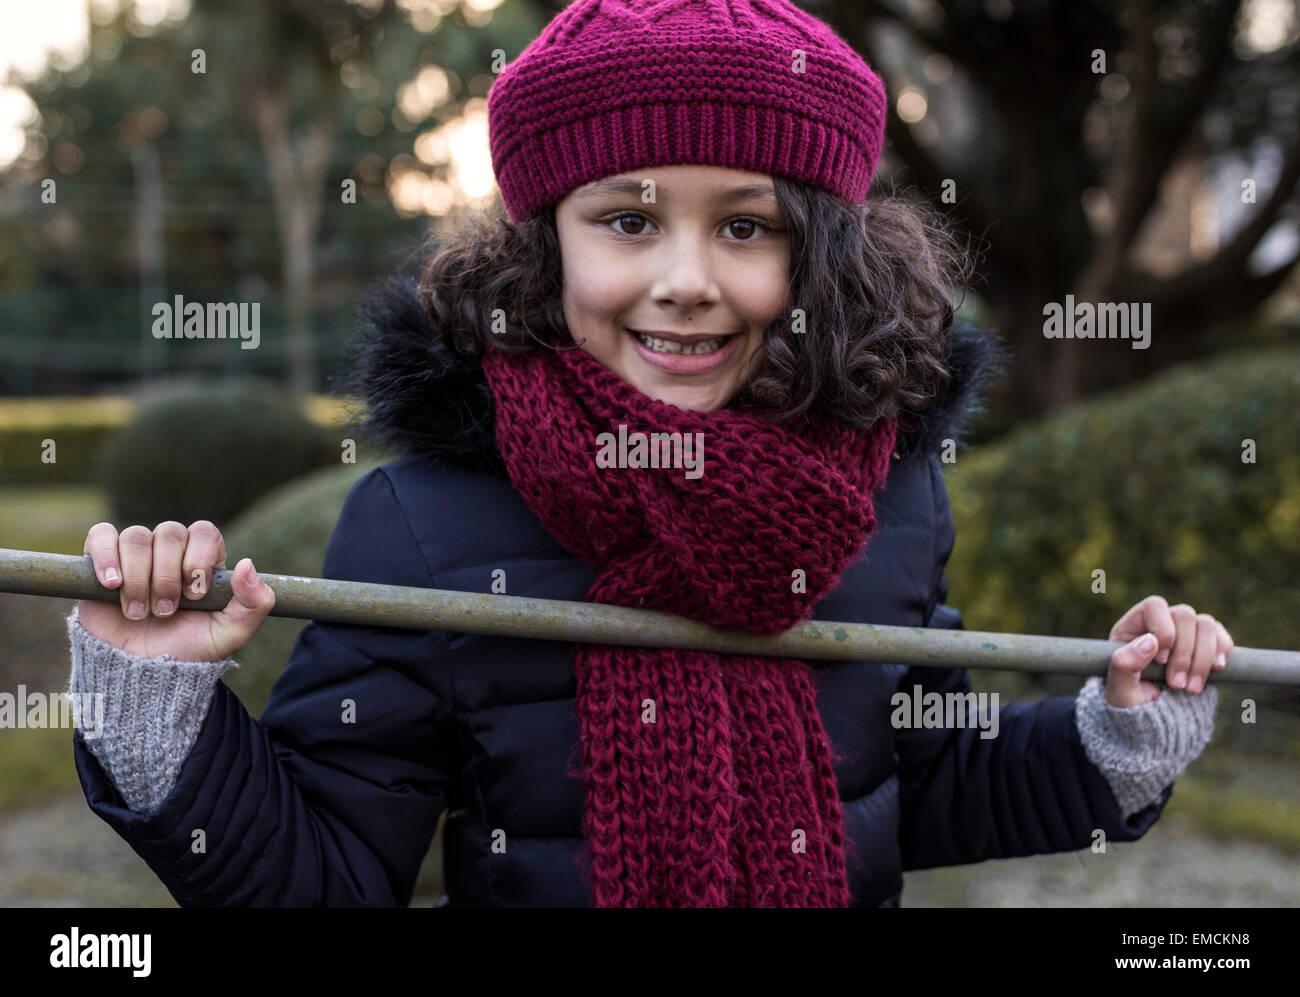 5ae600ca5320 Portrait of smiling little girl wearing wool cap and scarf Stock ...